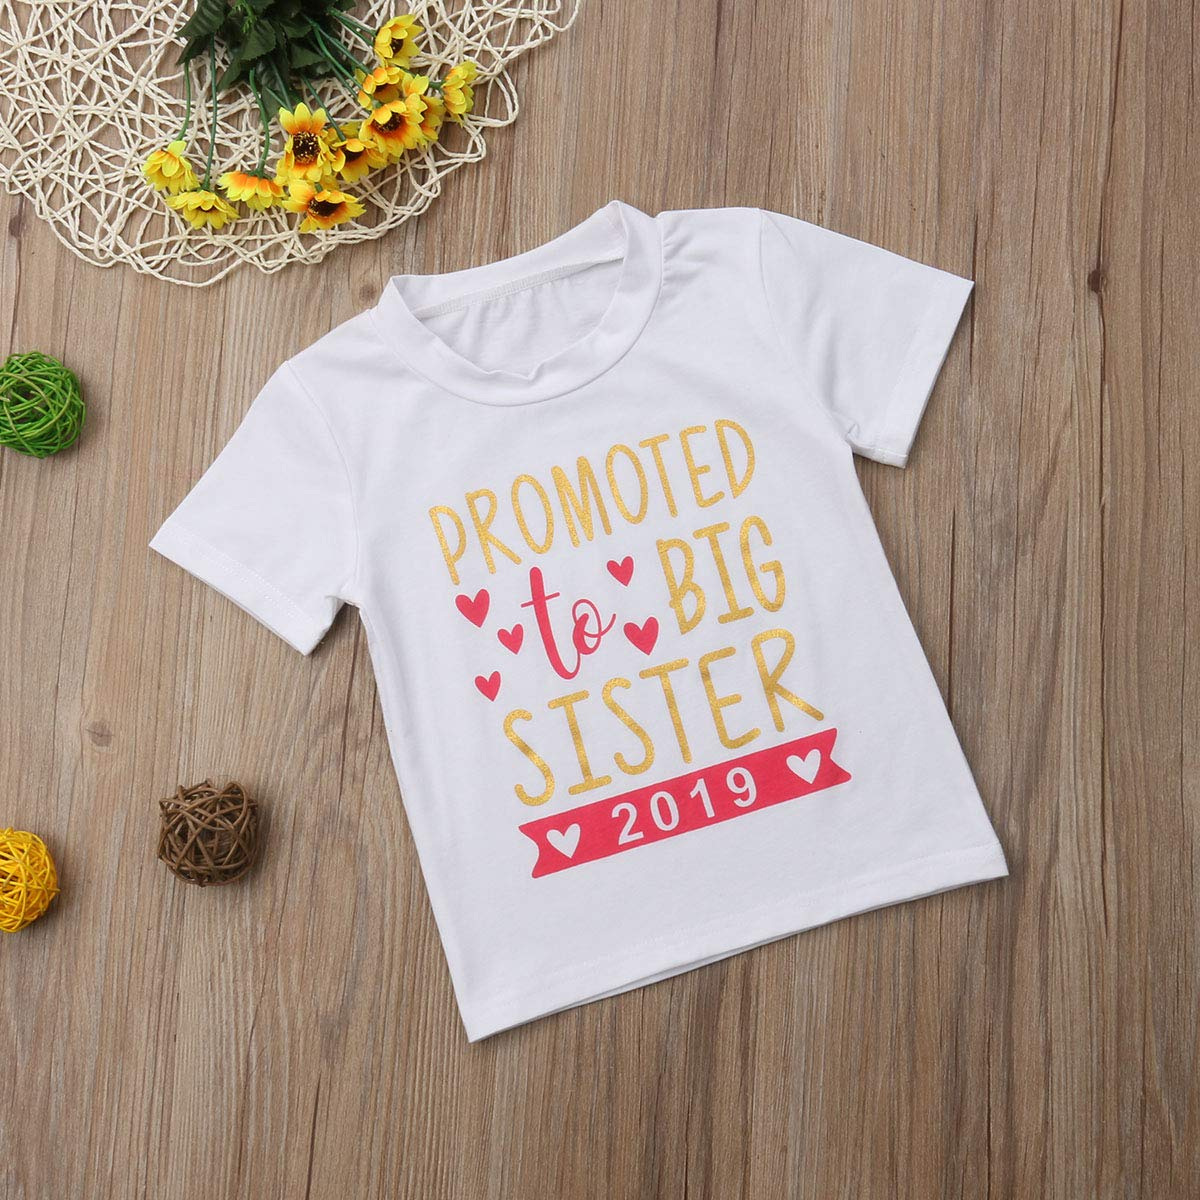 b2ca128f6 Gaono 2018 Baby Girl Clothes Outfit Big Sister Letter Print T-Shirt Top  Blouse Shirts larger image